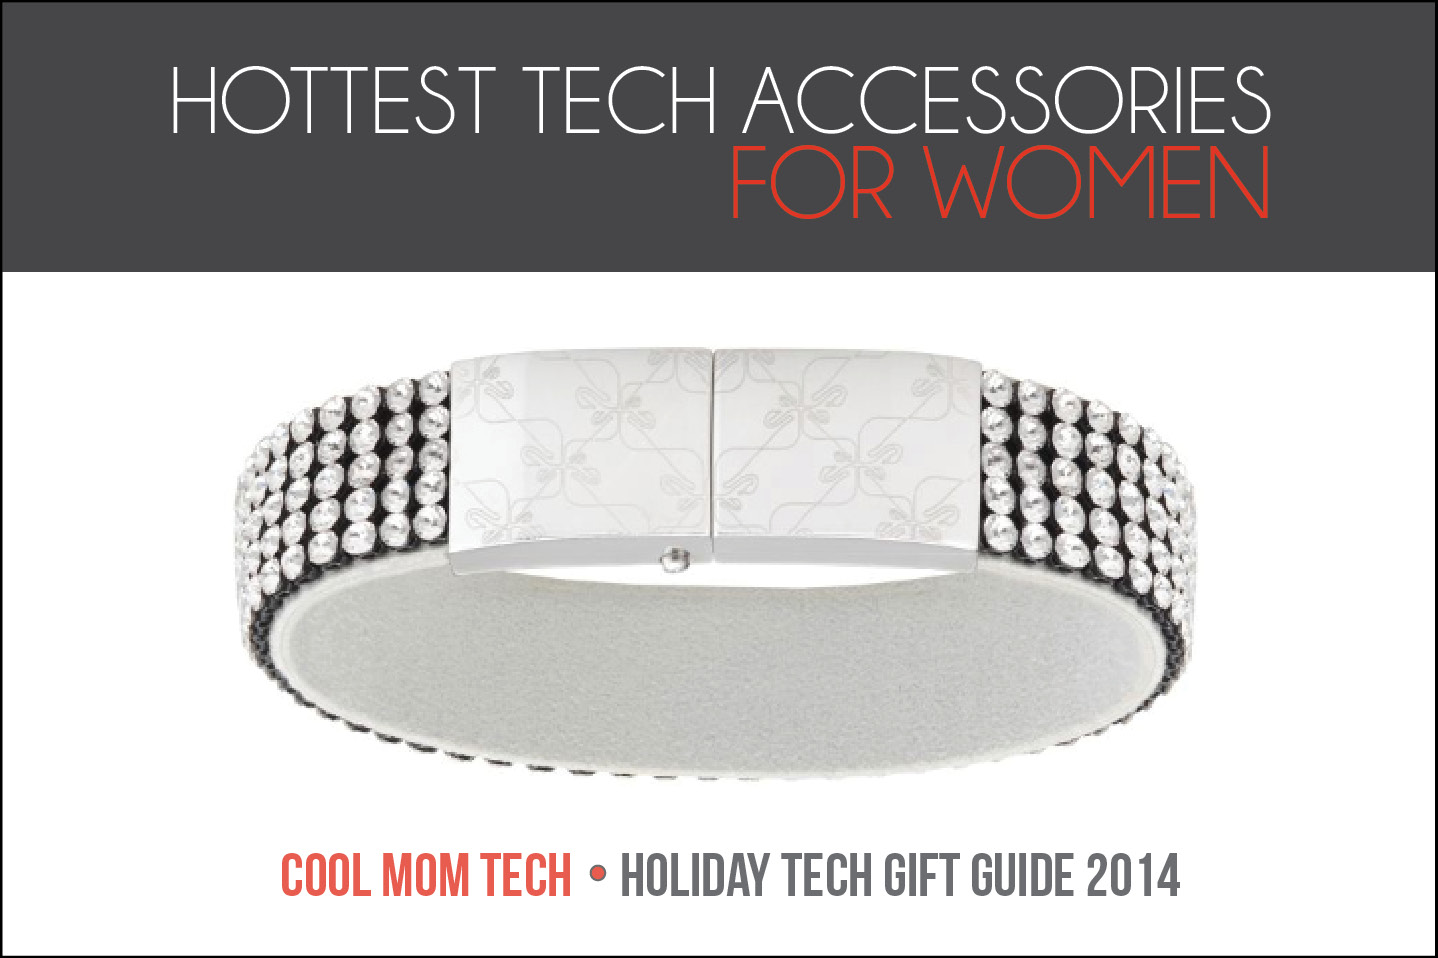 Stylish tech gifts for women: Holiday Tech Gifts 2014